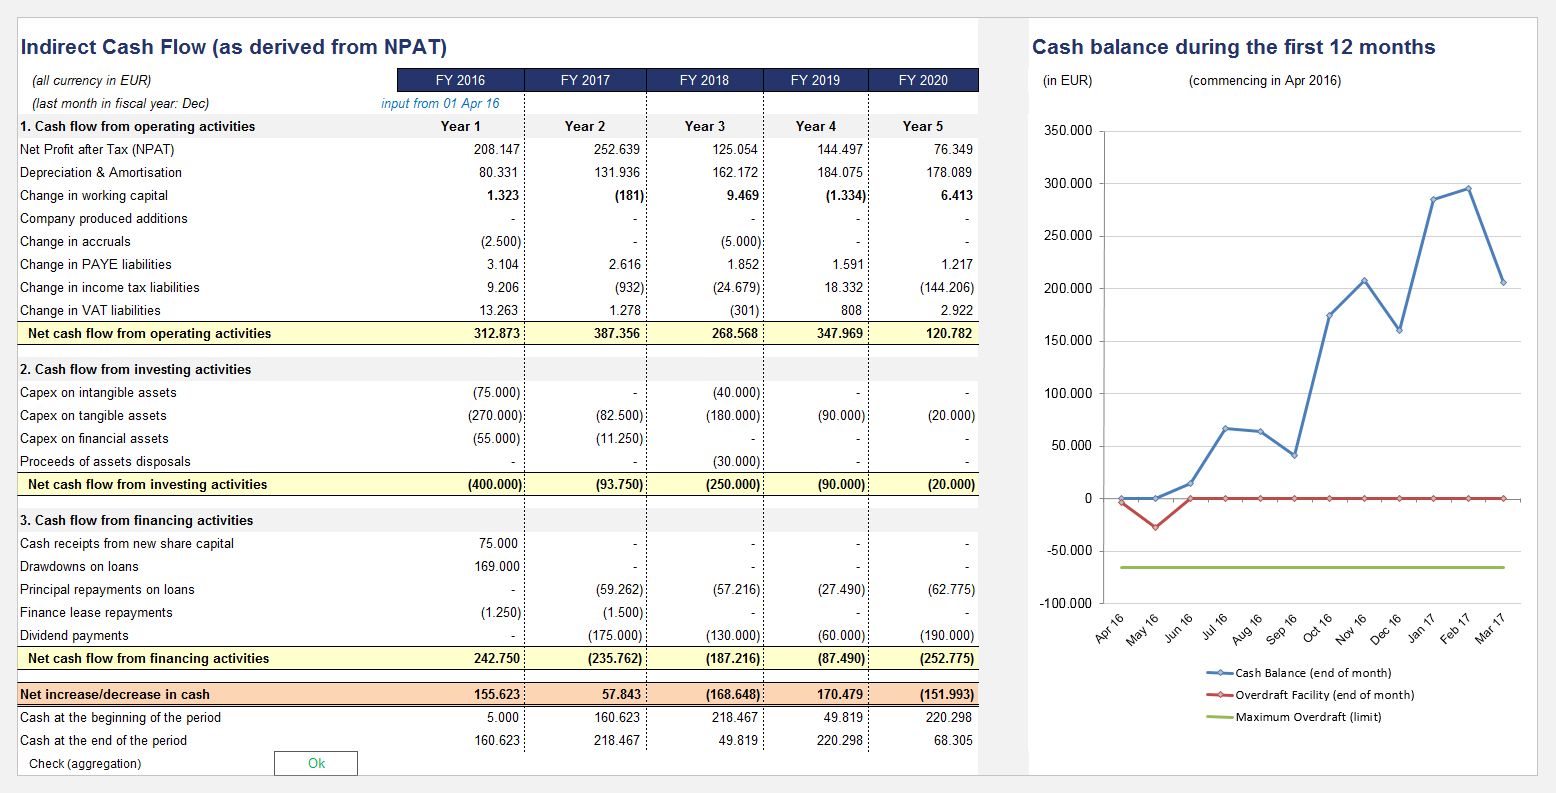 Cash Flow Indirect Method And Cash Balance During First